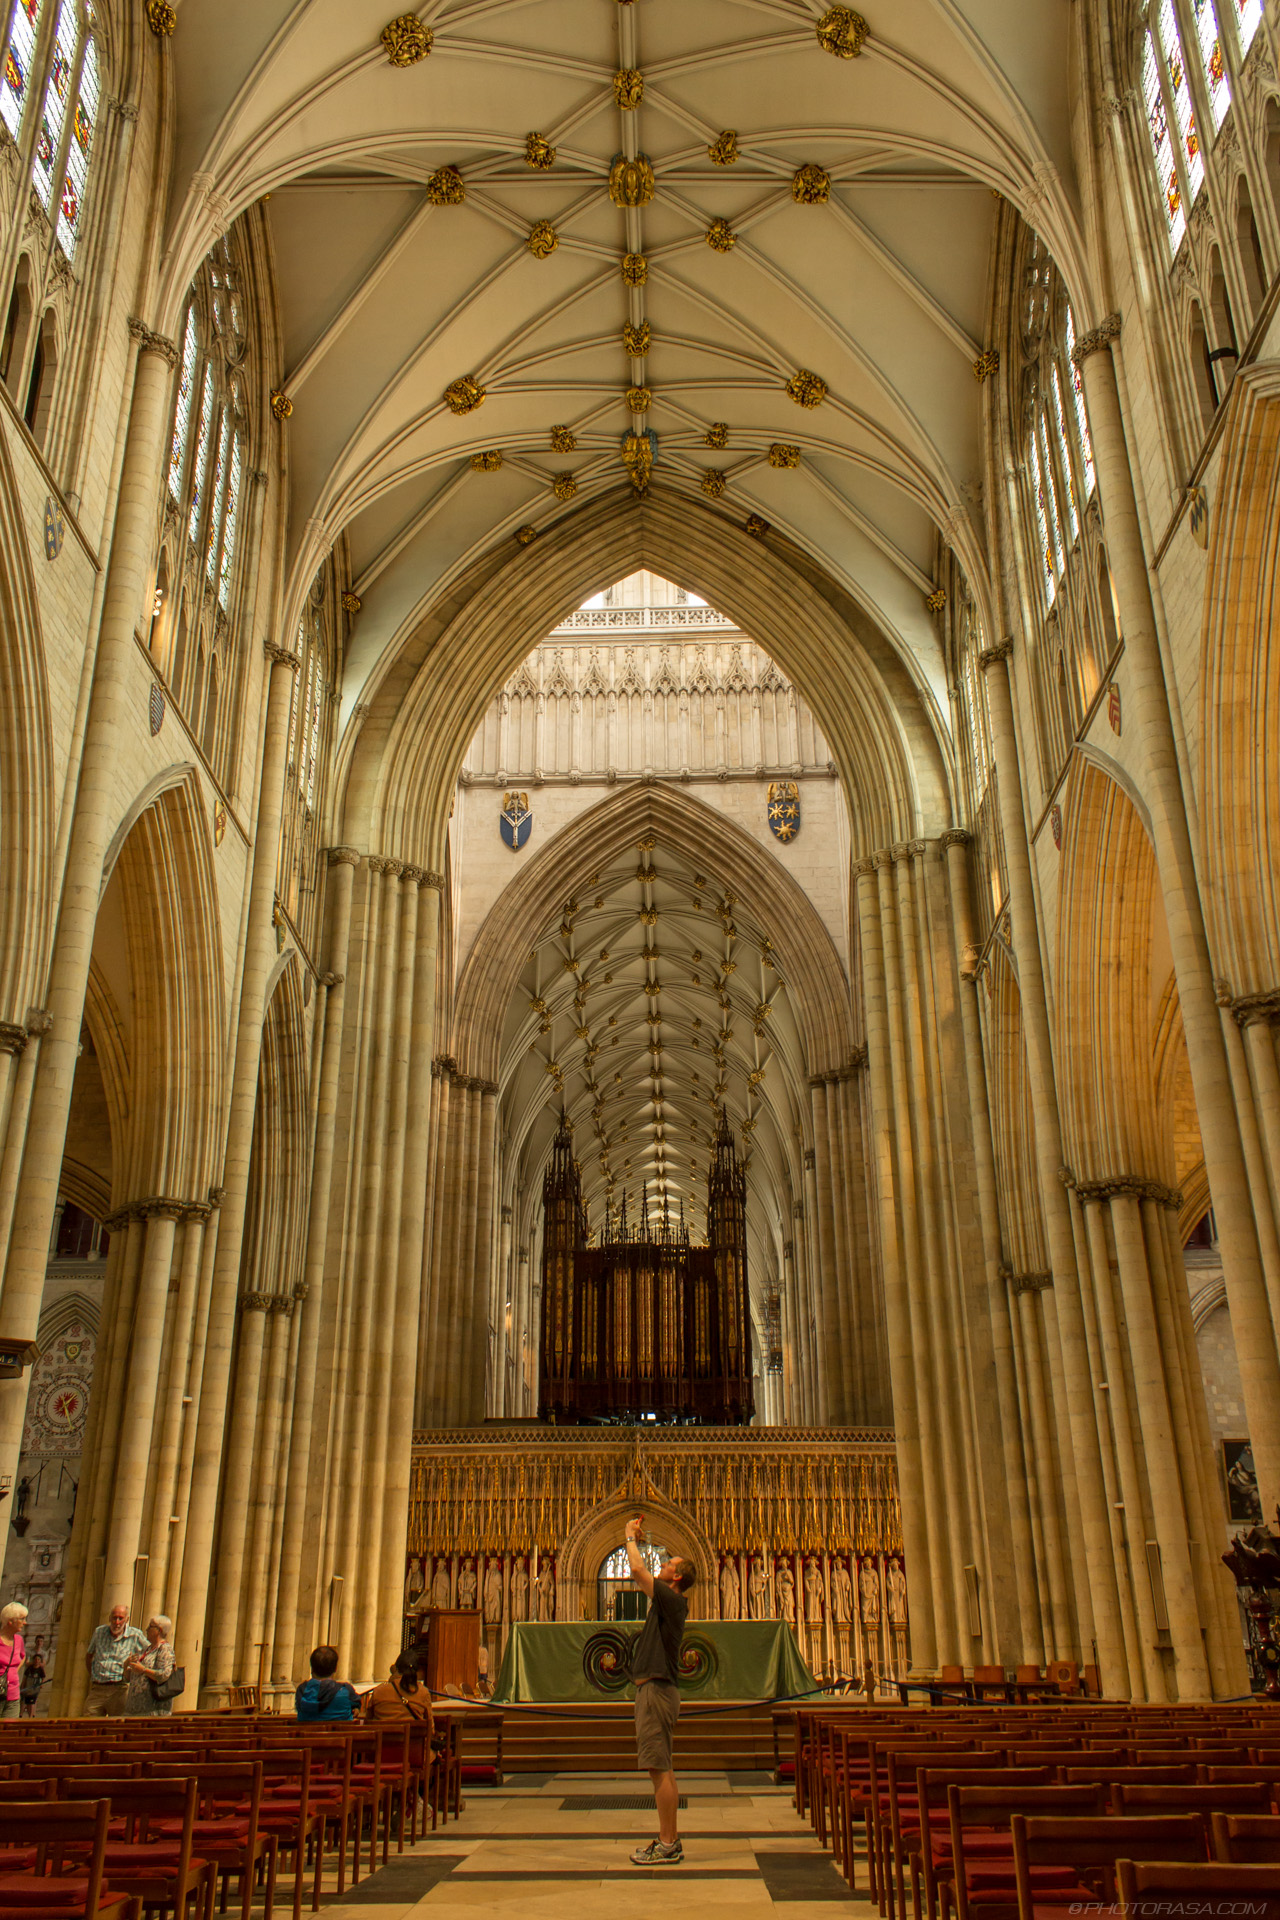 http://photorasa.com/places/yorkminster-cathedral/attachment/in-the-nave-looking-towards-the-choir/